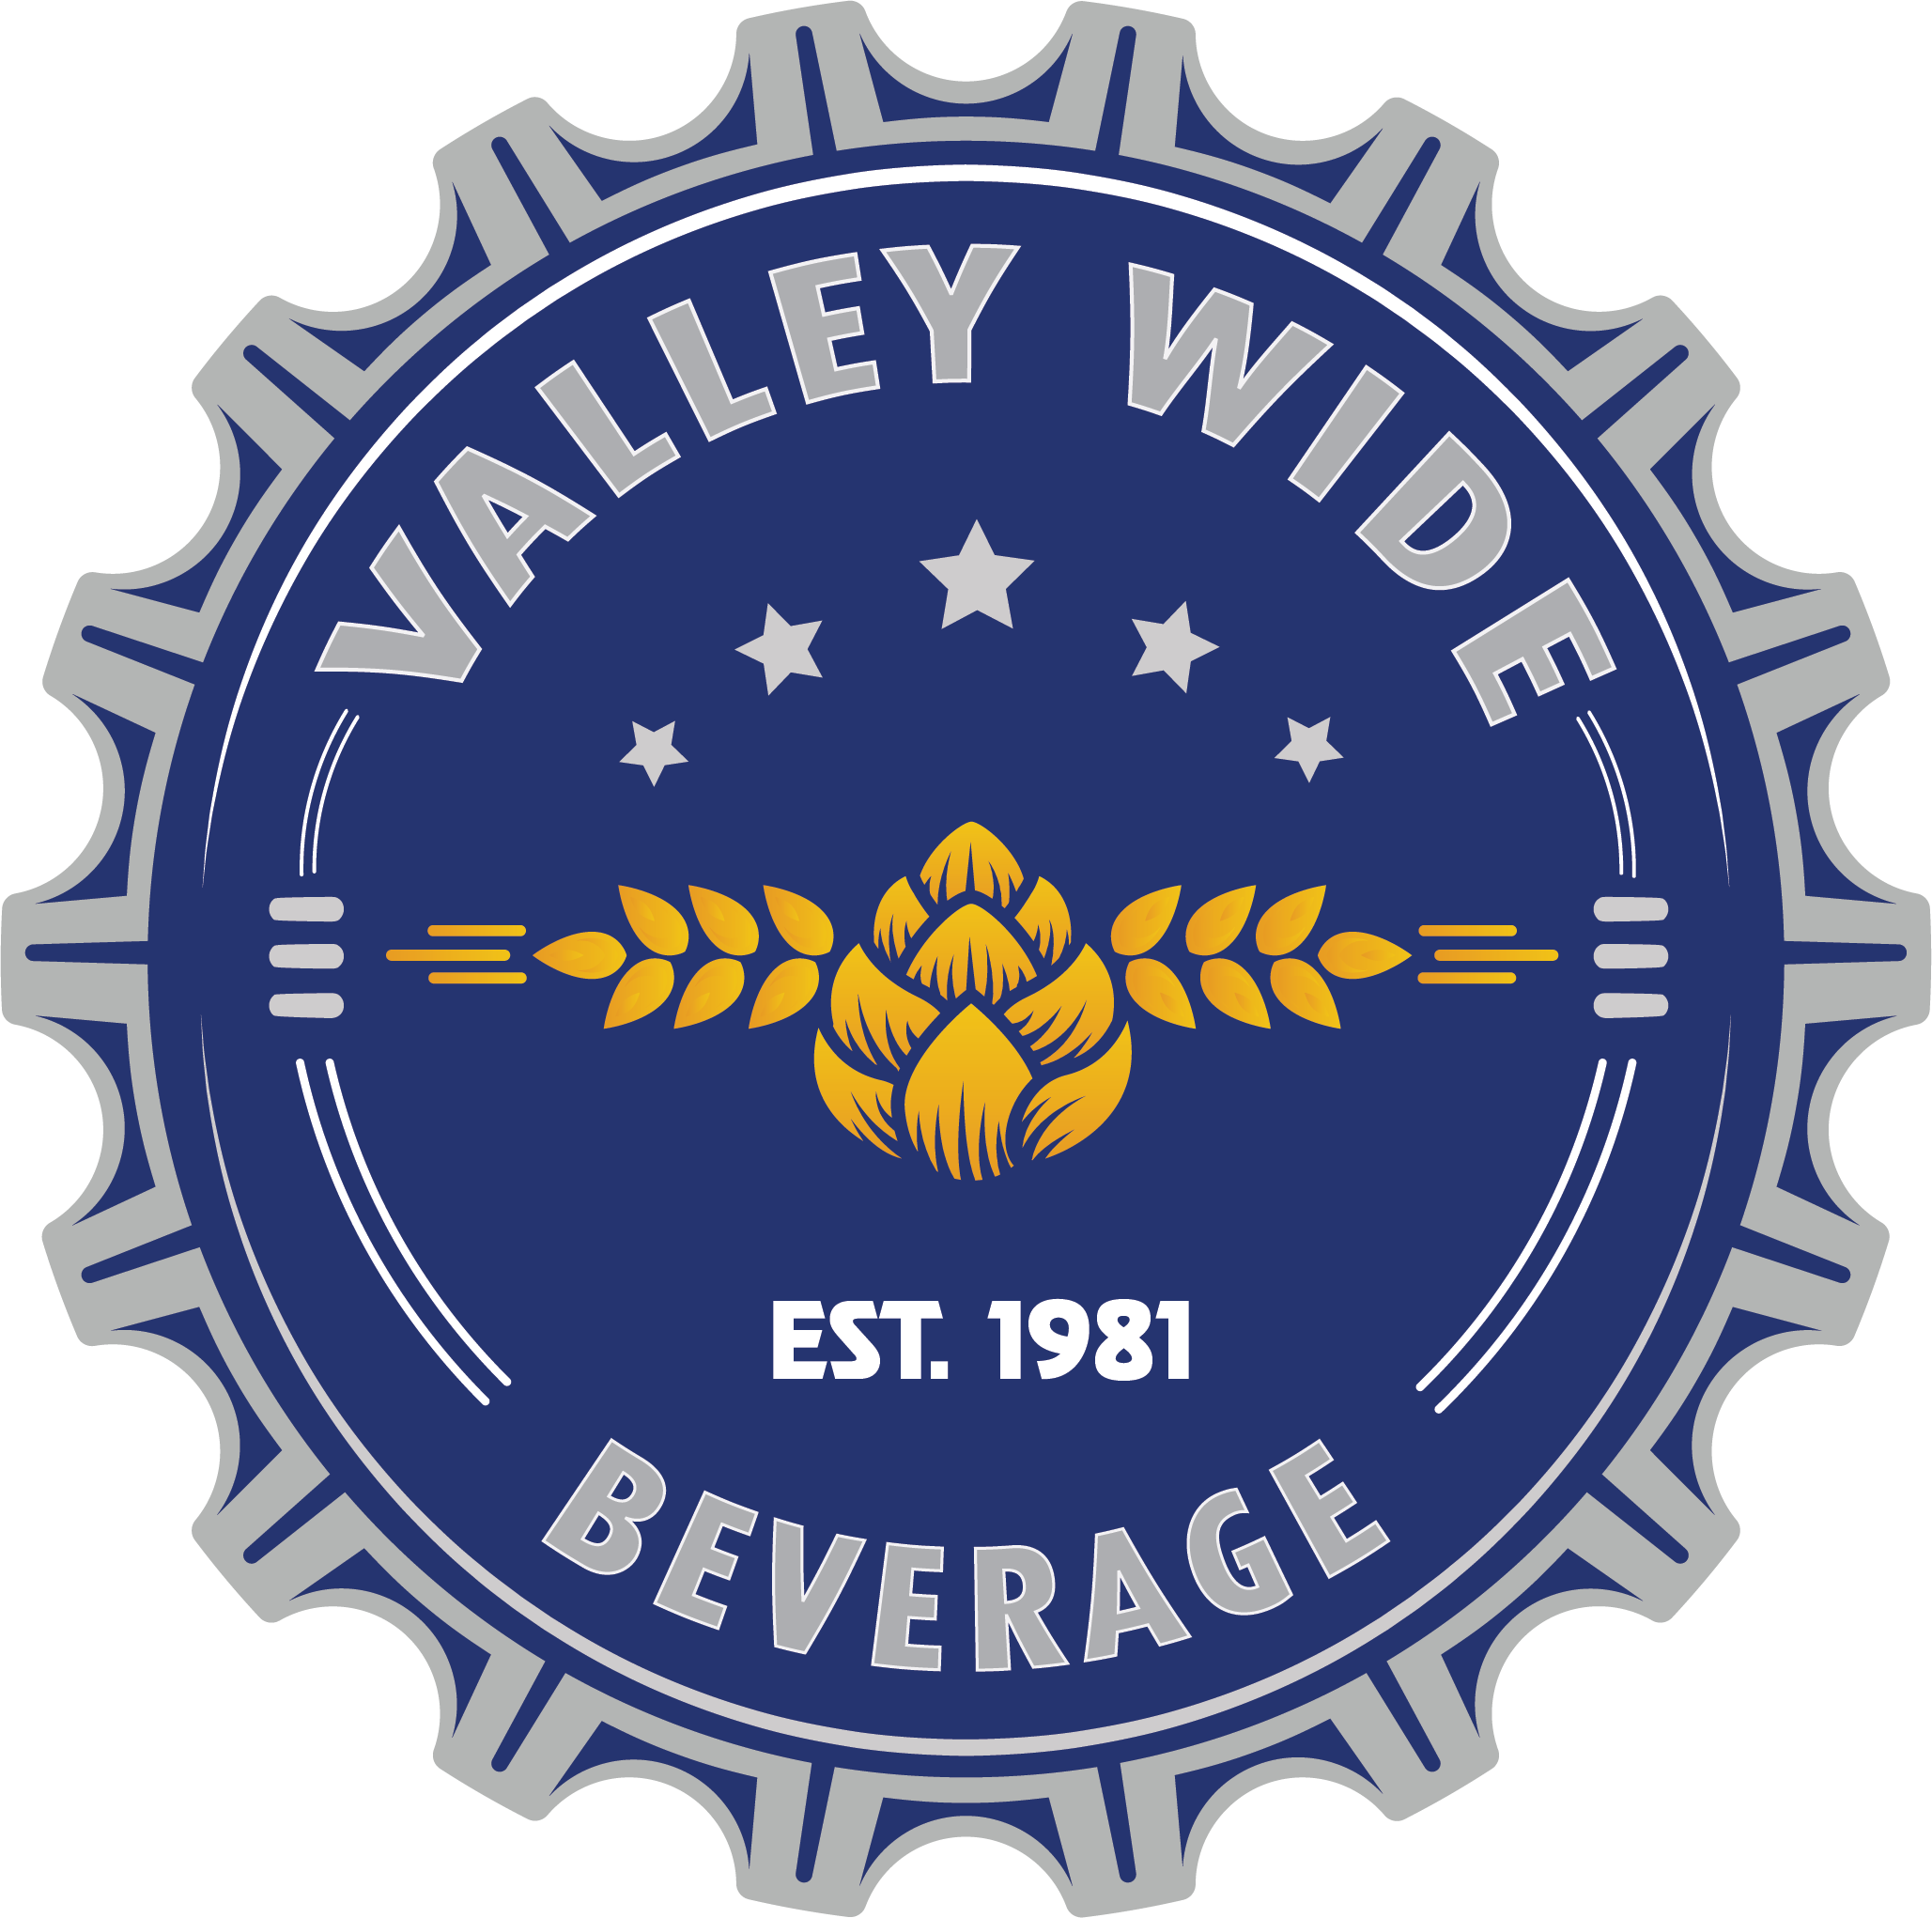 http://www.valleywidebeverage.com/